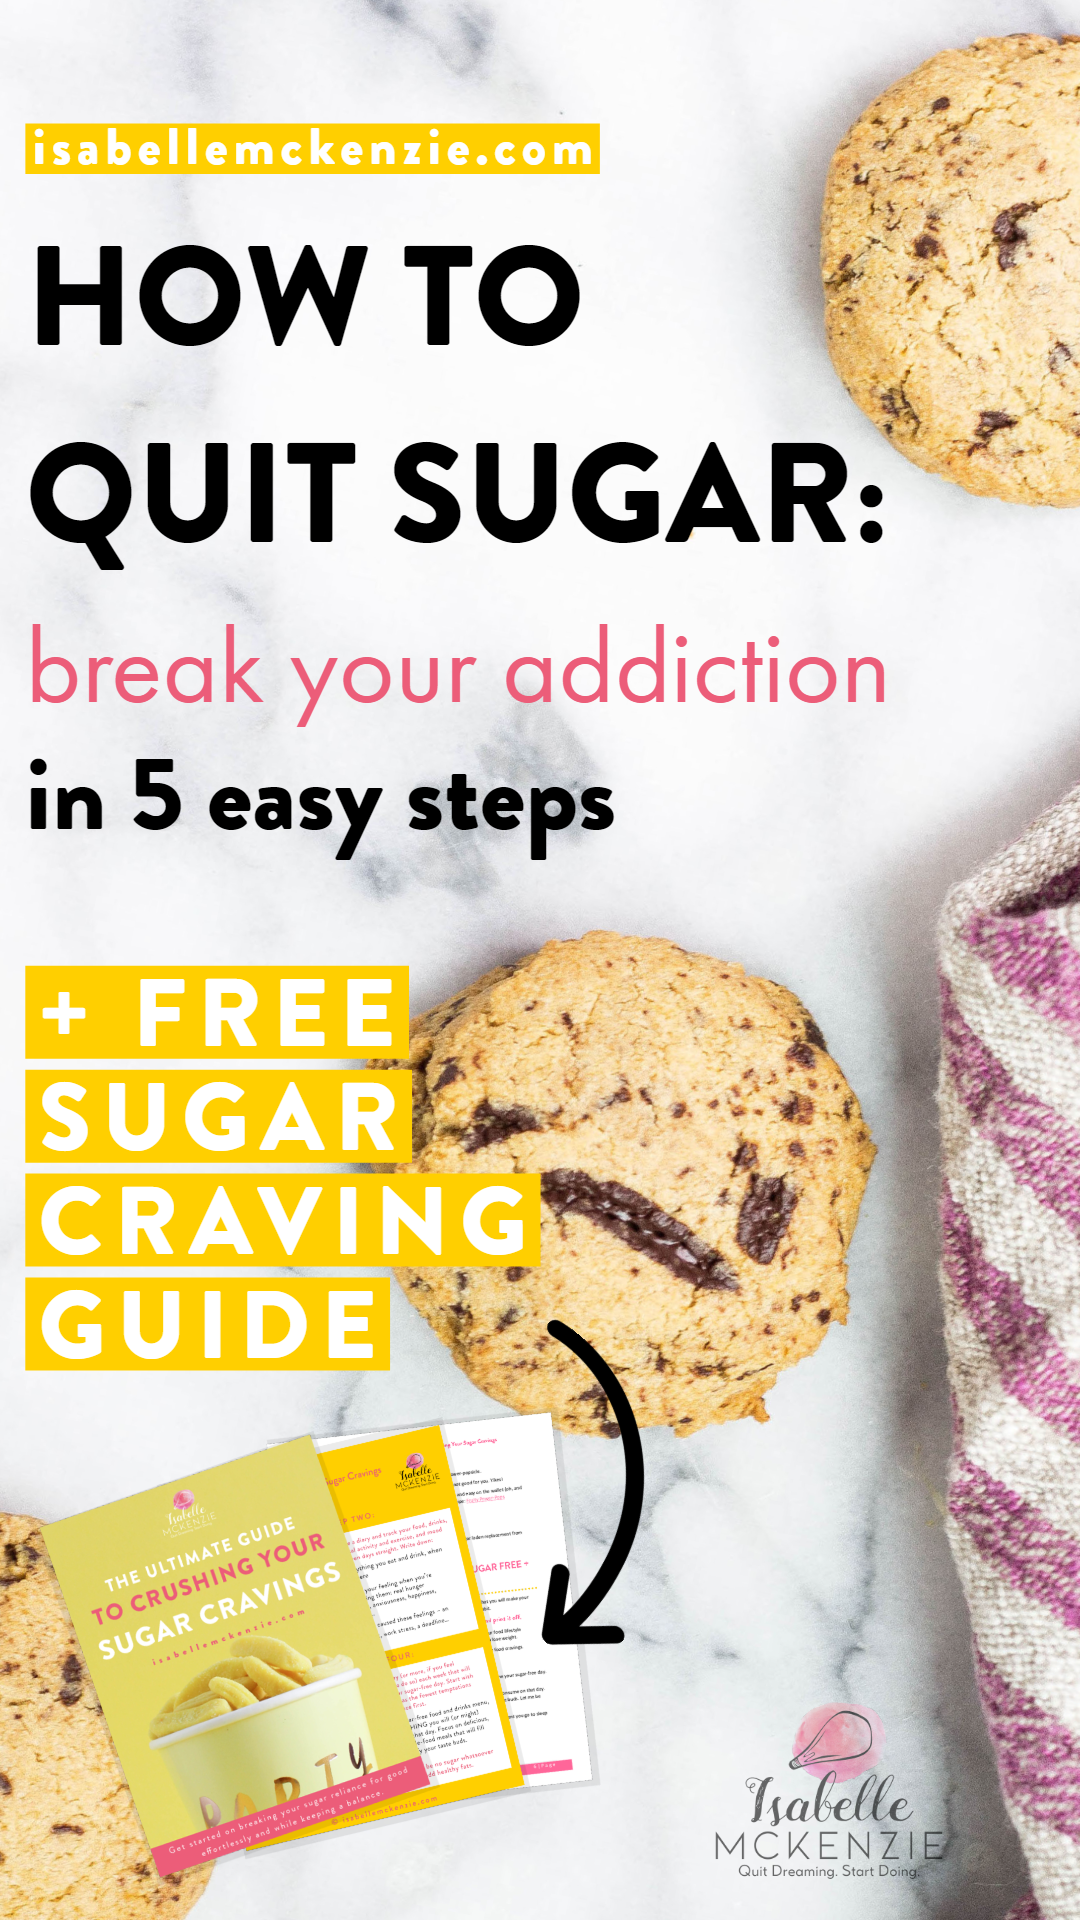 How to Quit Sugar: Break Your Addiction in 5 Easy Steps - Isabelle McKenzie